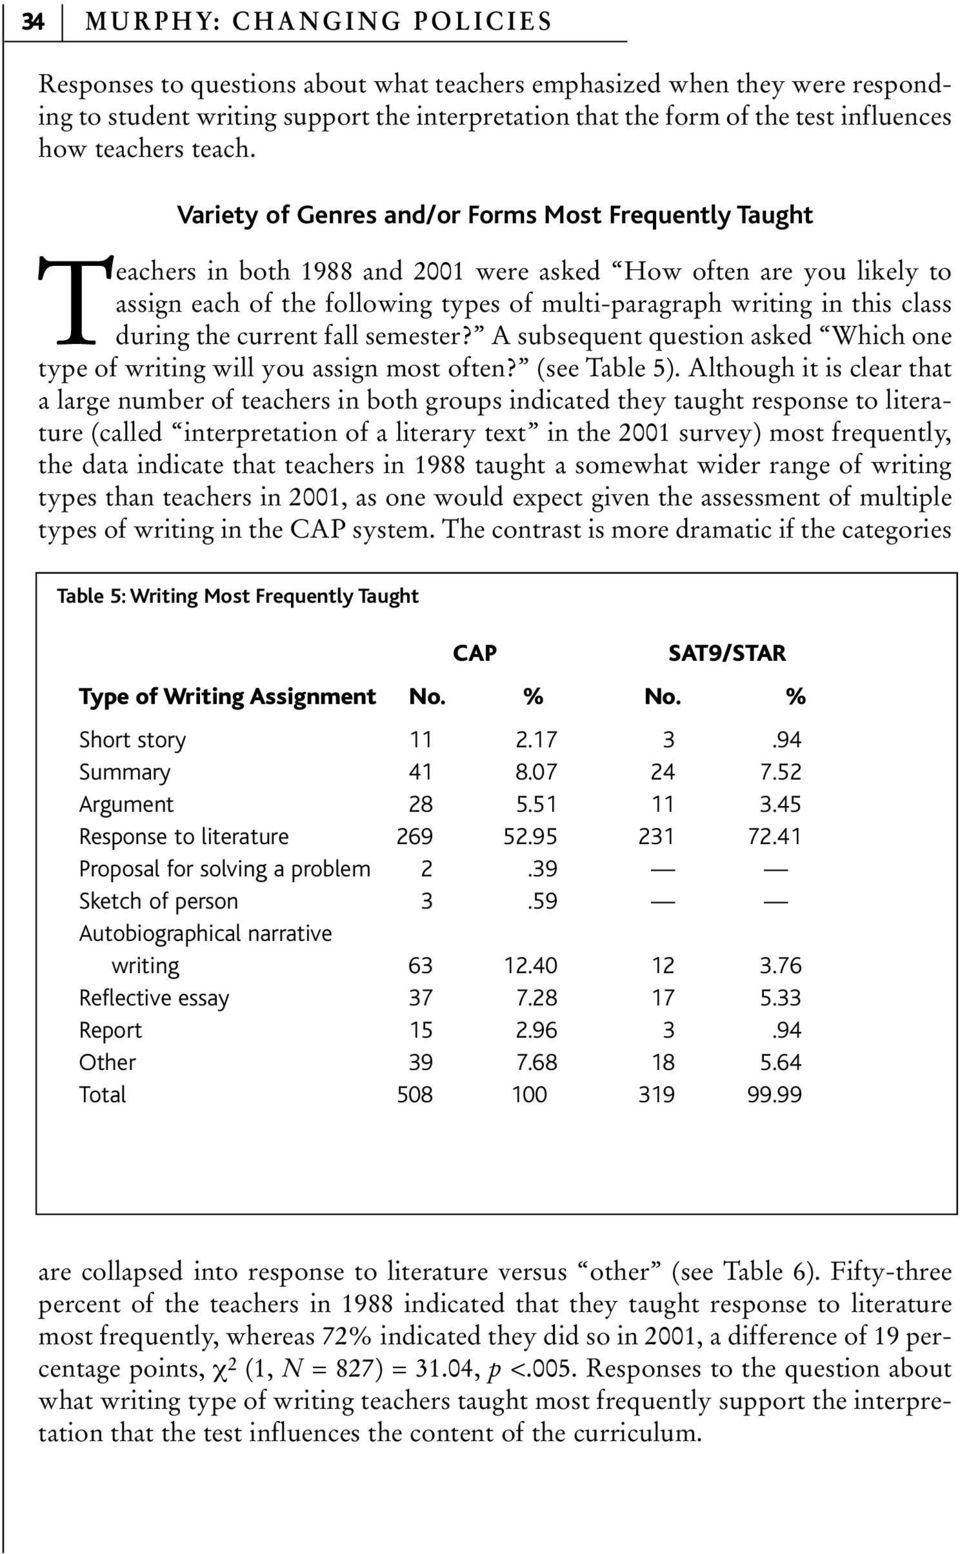 Variety of Genres and/or Forms Most Frequently Taught Teachers in both 1988 and 2001 were asked How often are you likely to assign each of the following types of multi-paragraph writing in this class